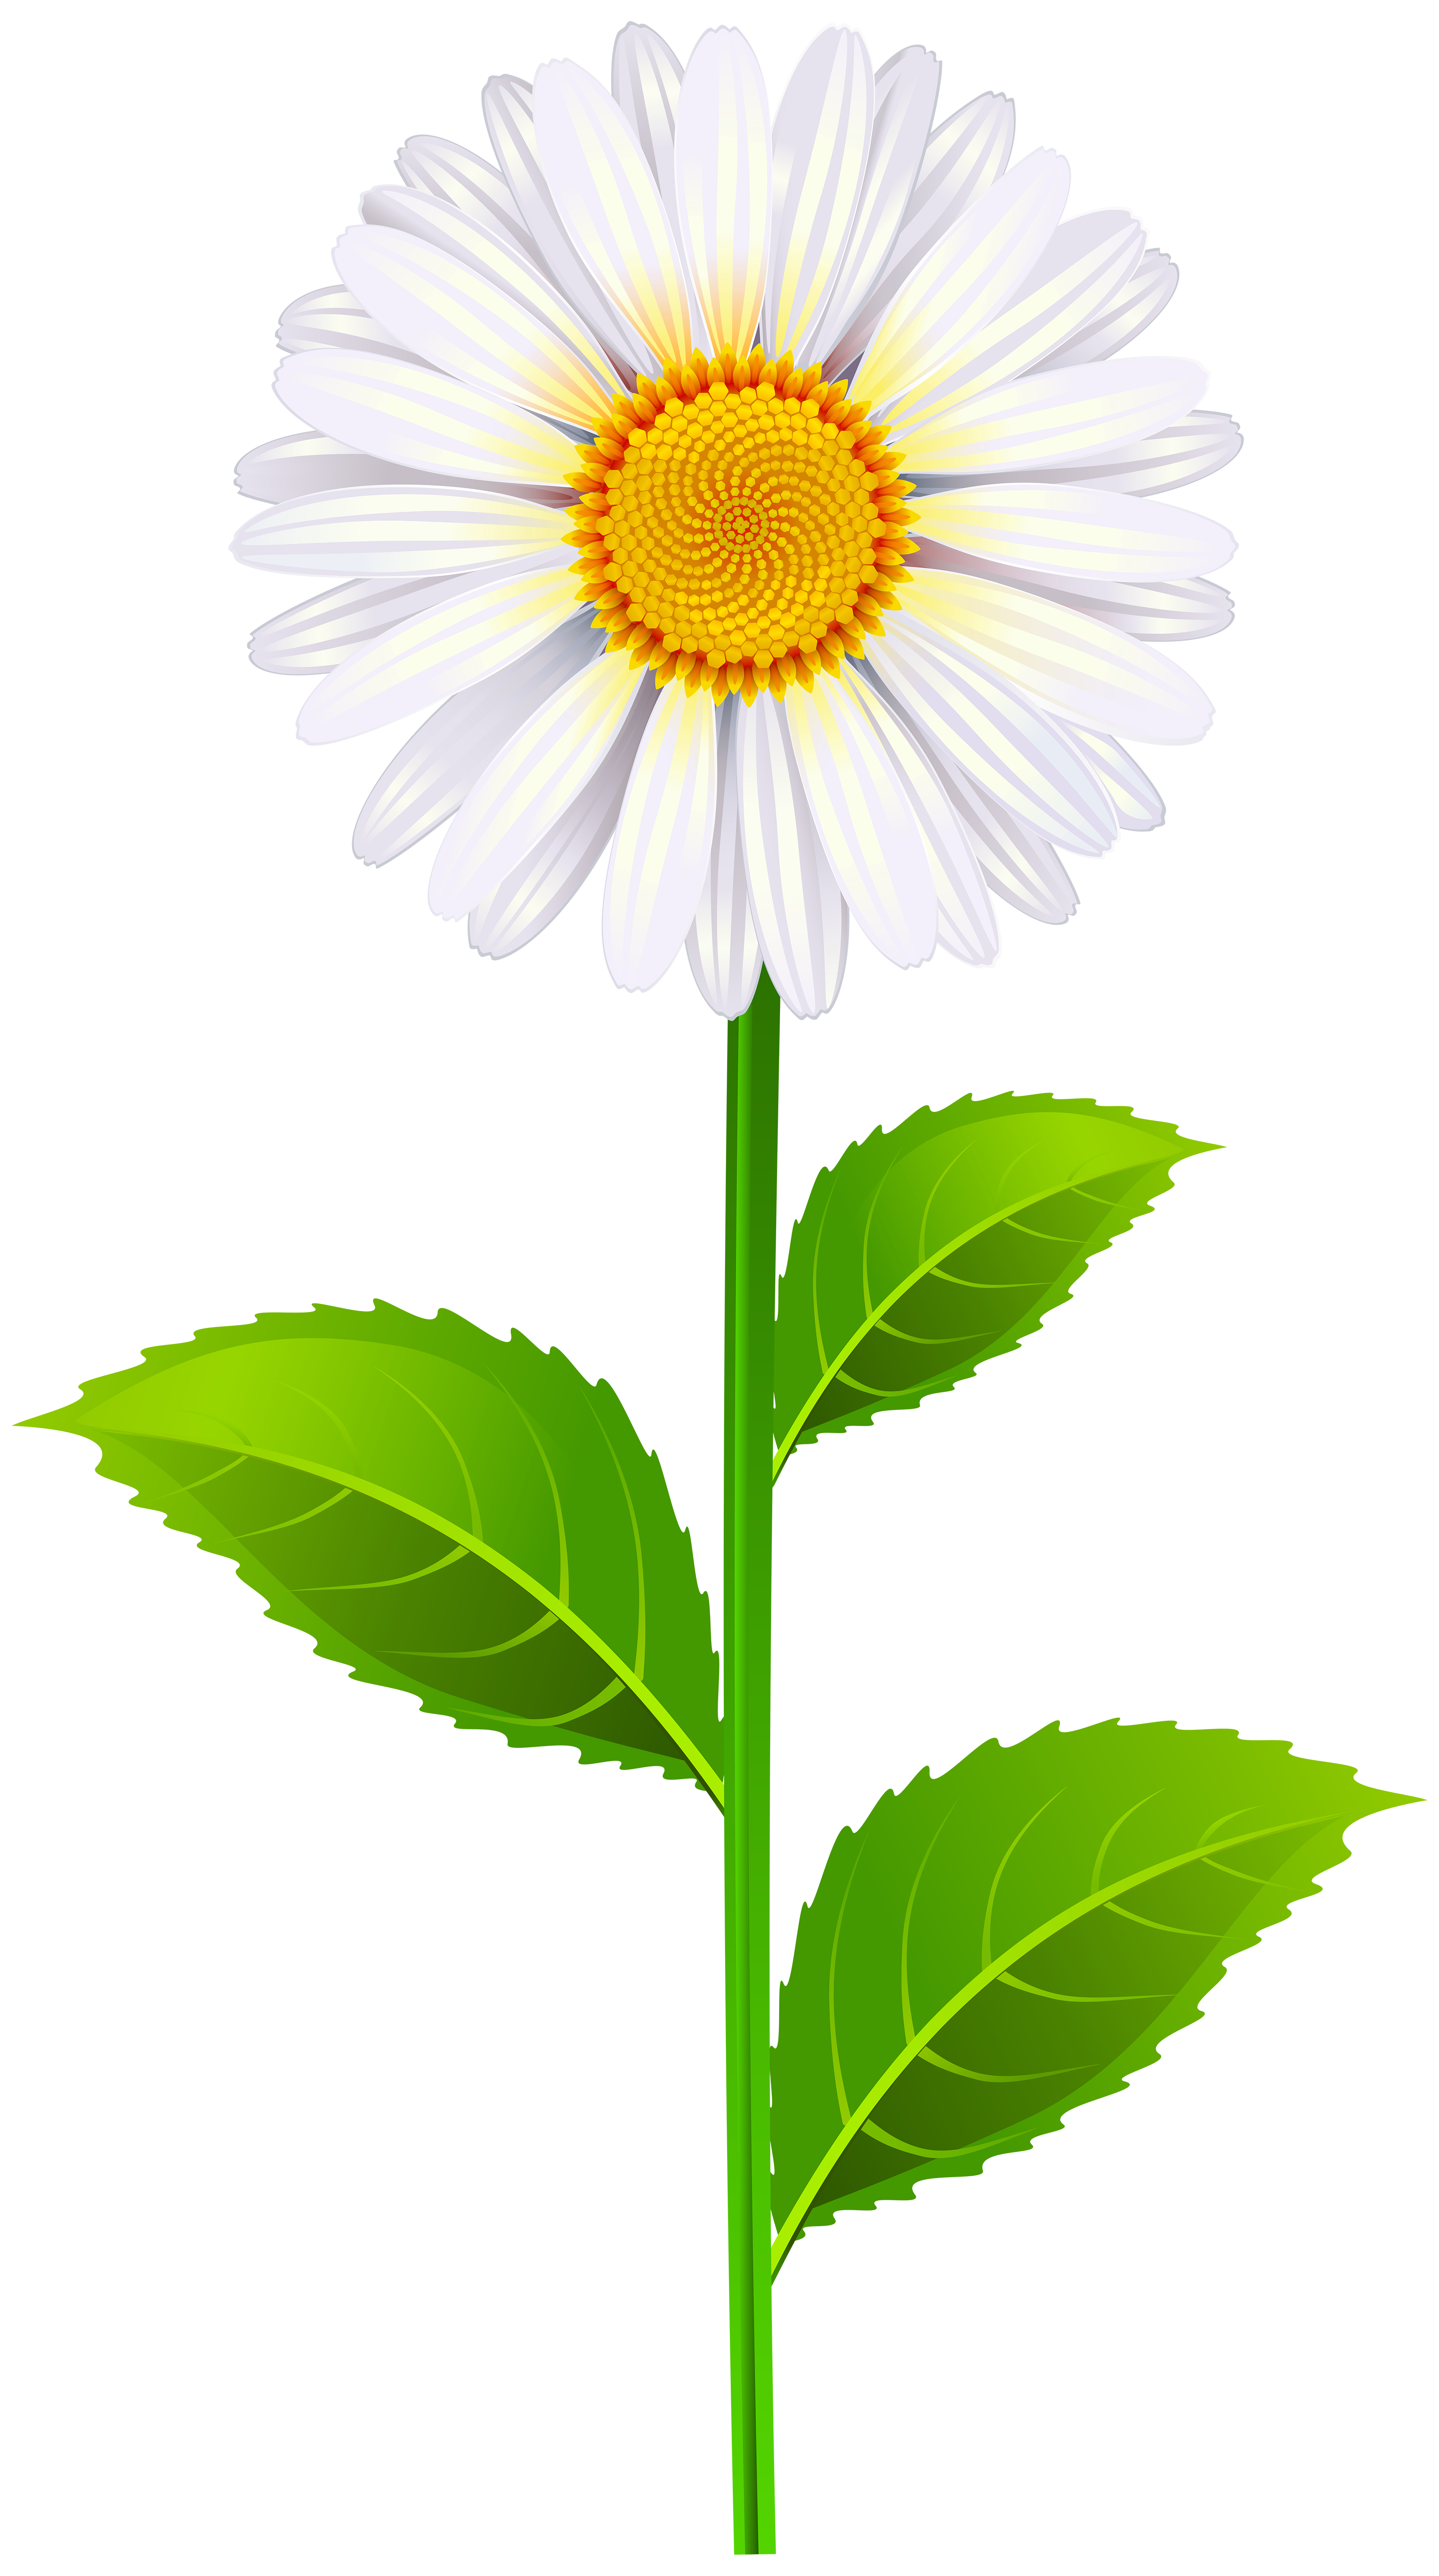 Marguerite clipart #3, Download drawings